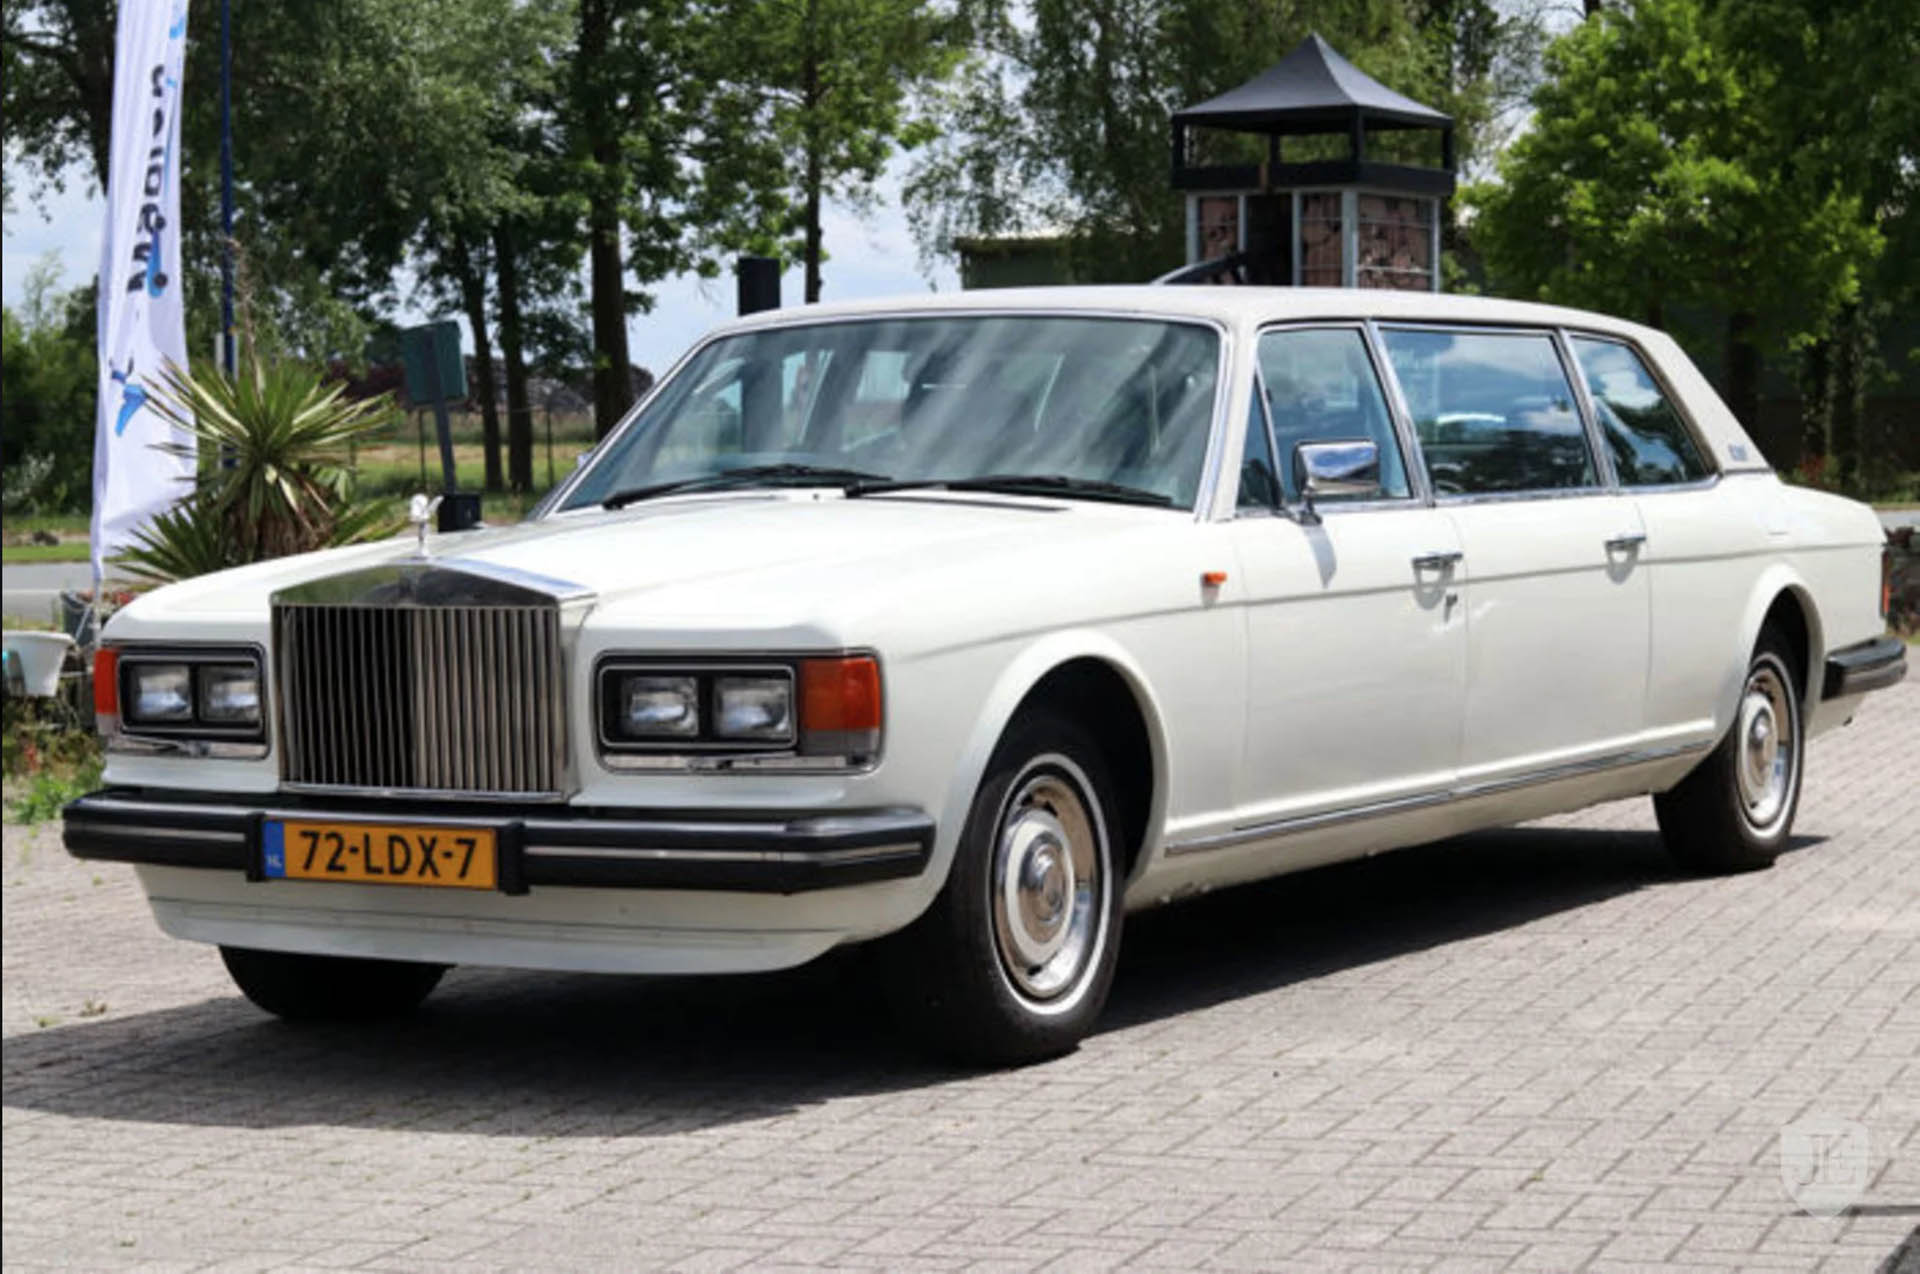 This Old Rolls Royce Limo Won T Cost You A Tenth The Price Of A New One Carscoops